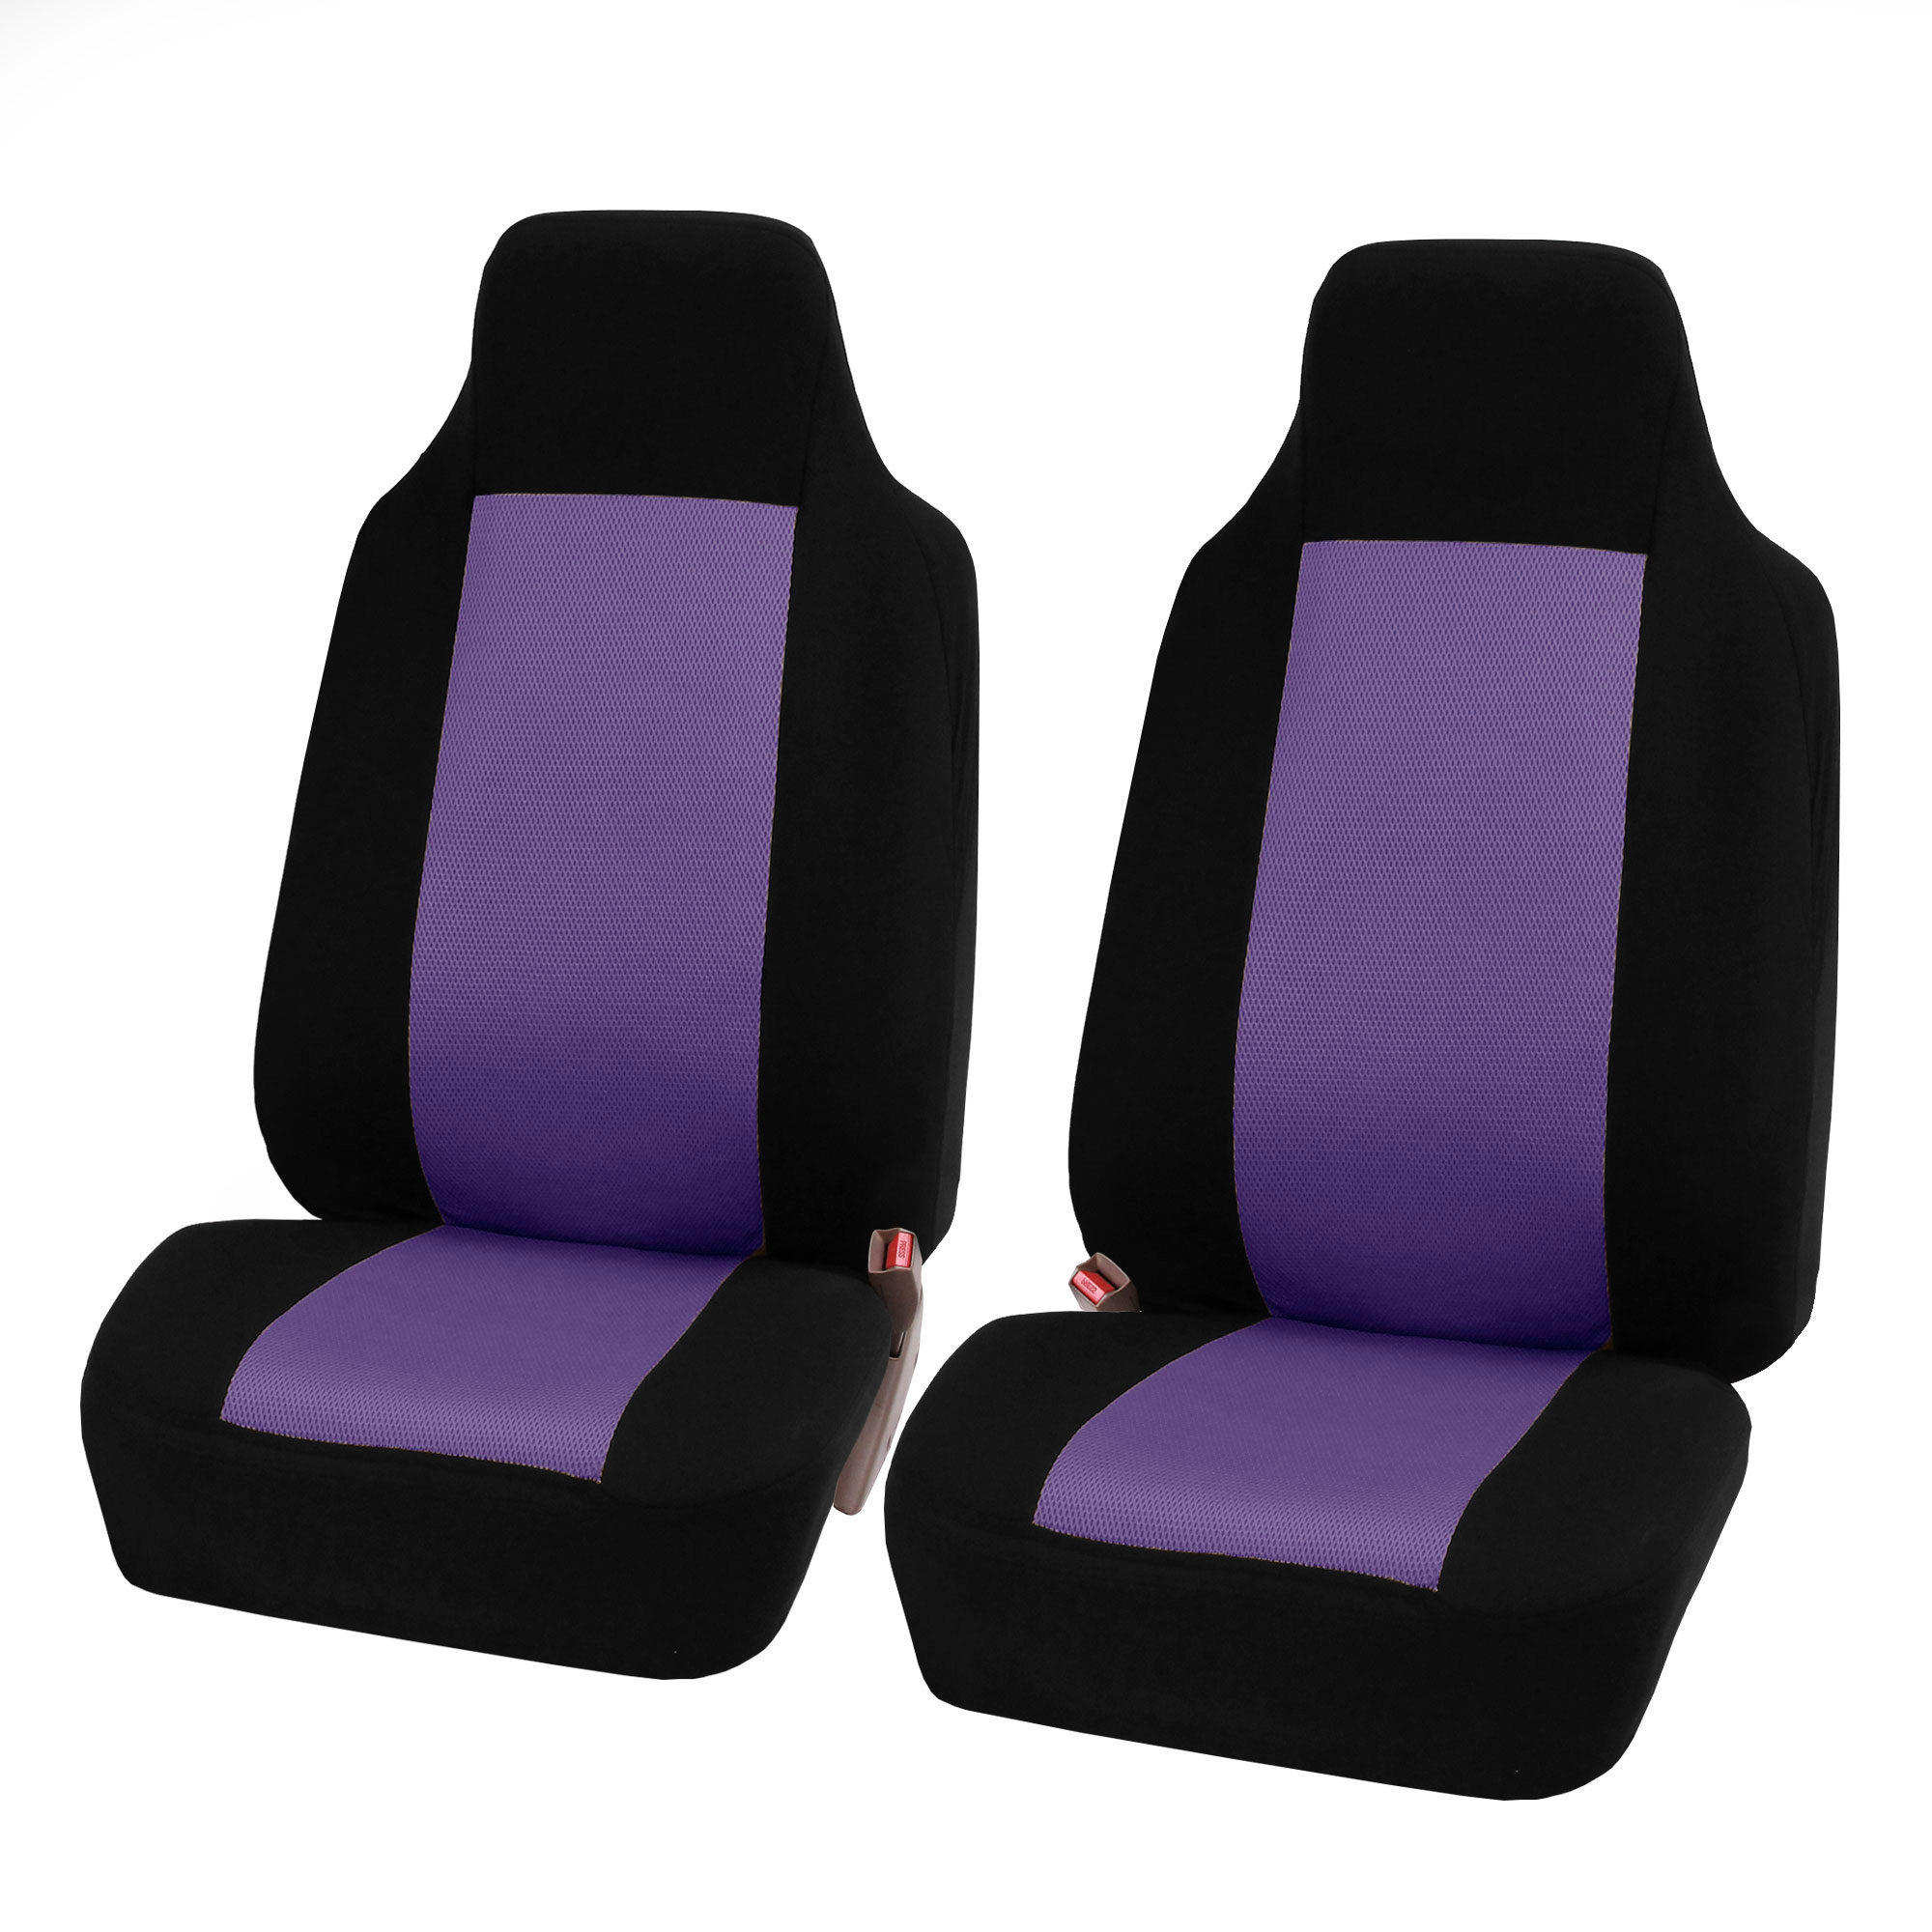 FH Group 3D Air-mesh Car Seat Covers, Front Set, Purple and Black